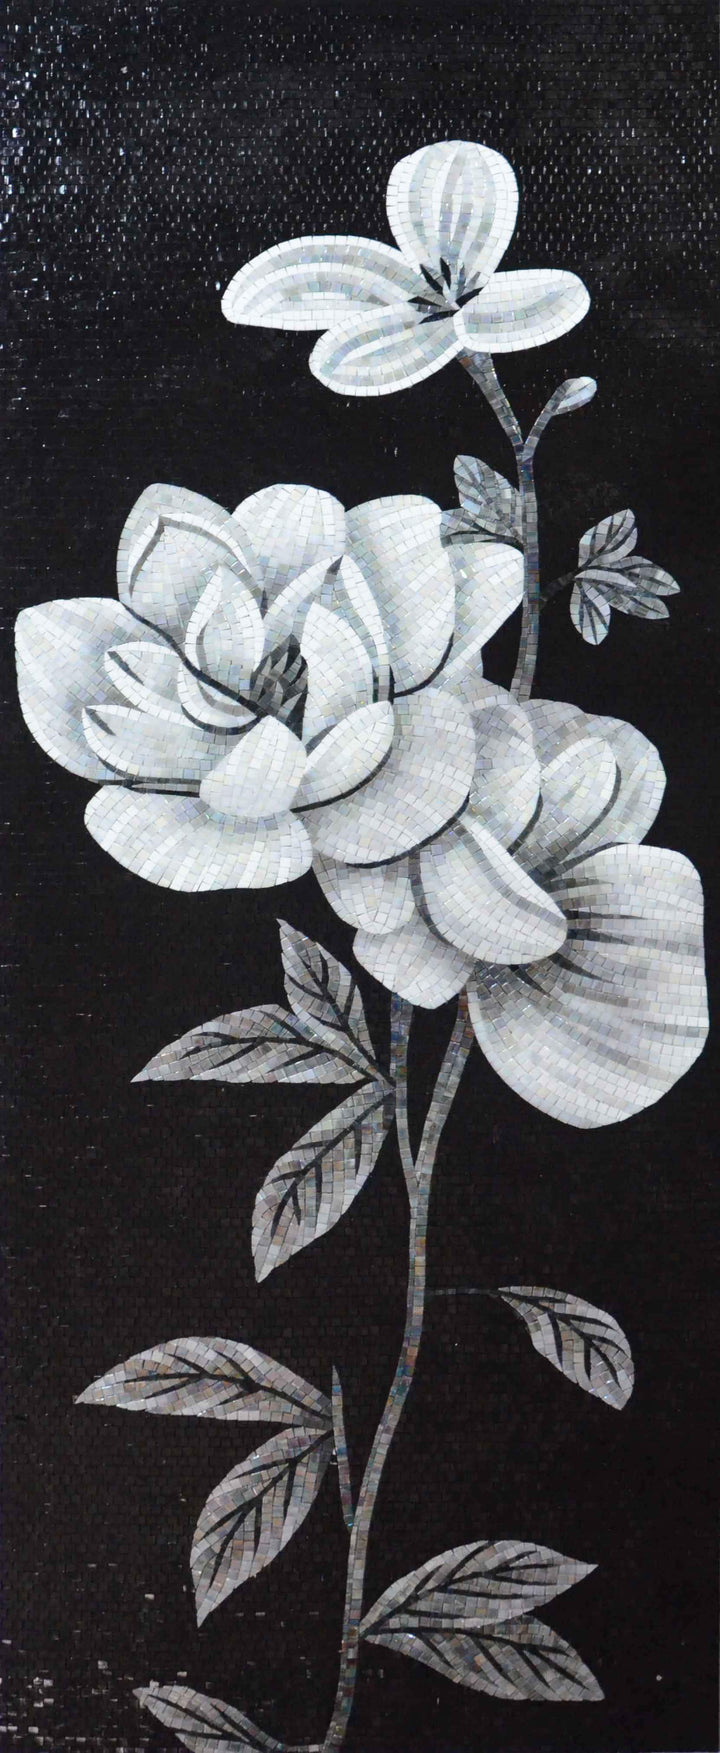 Monochrome Flower - Mosaic Art